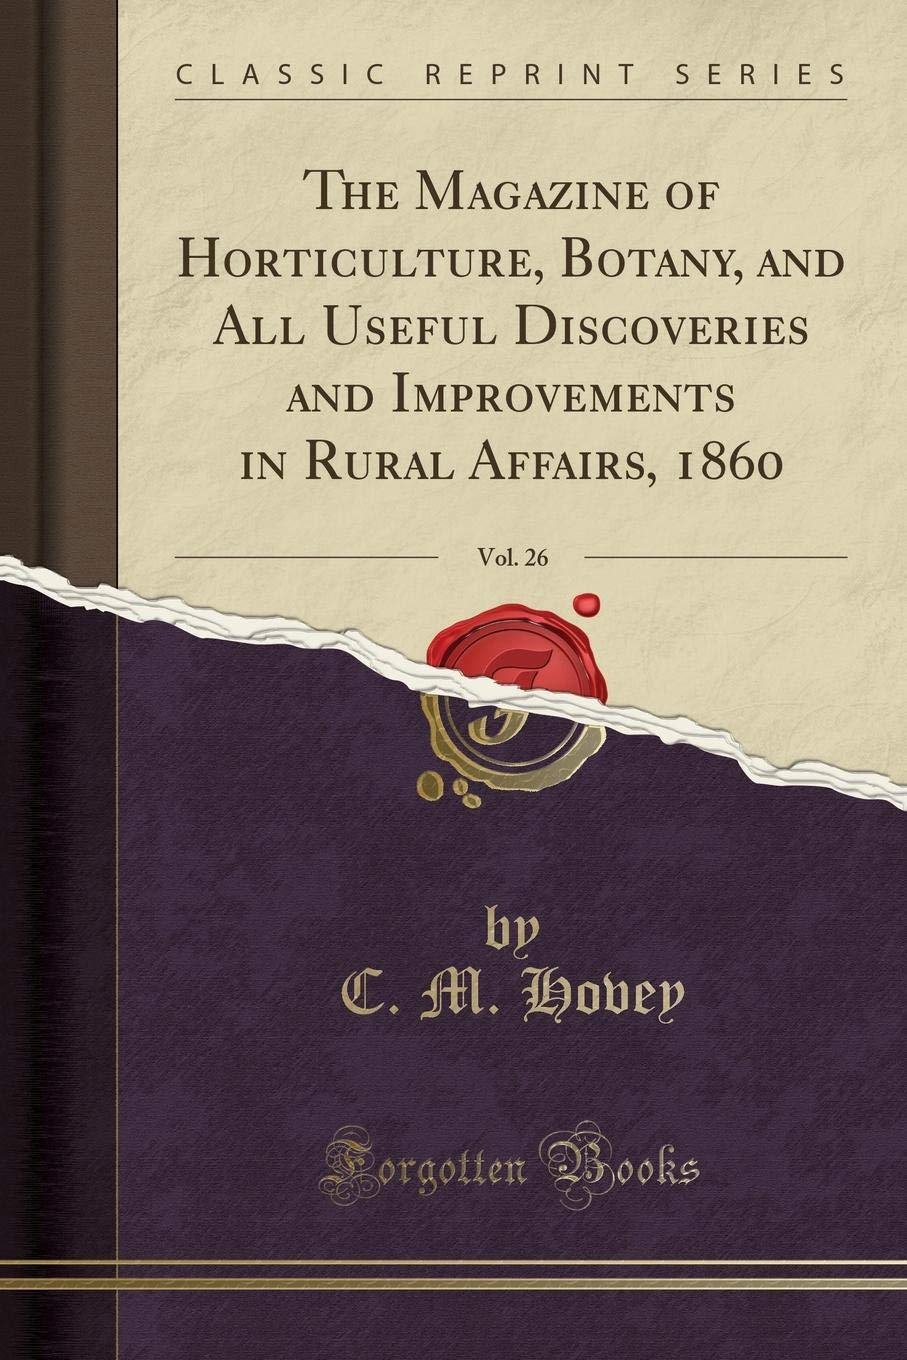 The Magazine of Horticulture, Botany, and All Useful Discoveries and Improvements in Rural Affairs, 1860, Vol. 26 (Classic Reprint) pdf epub